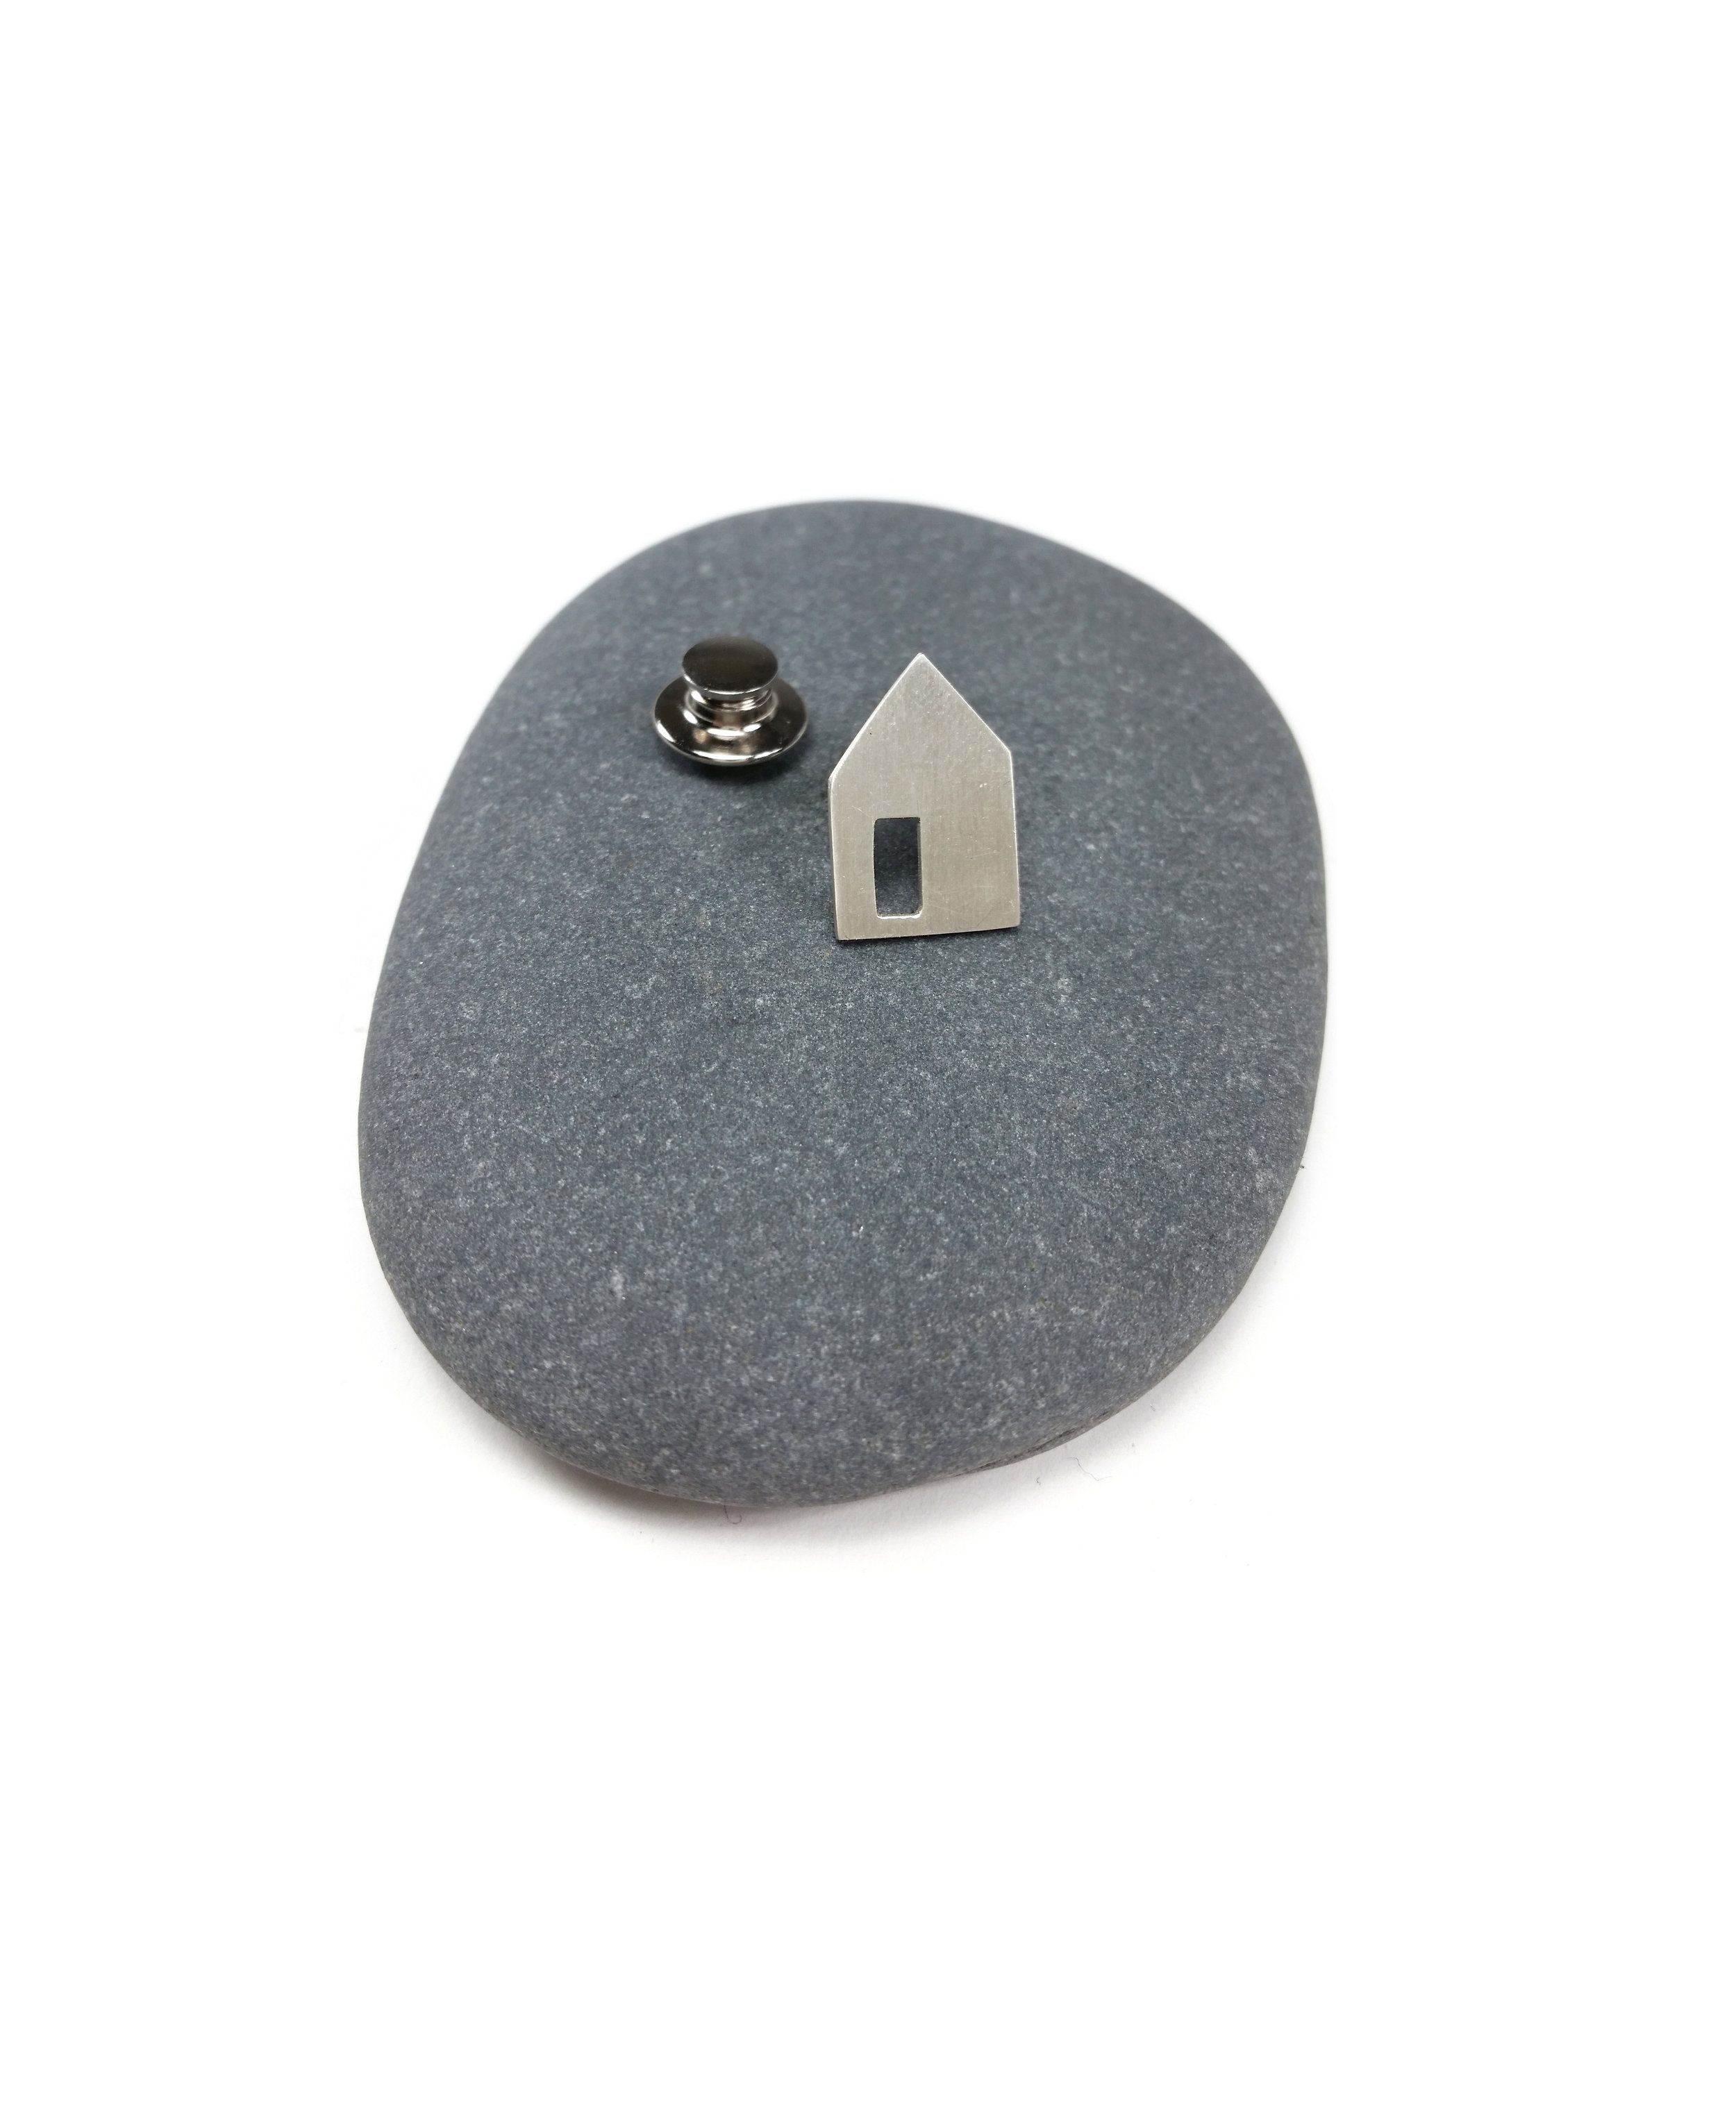 Introducing the OPEN DOOR pin: designed to represent the basic notion of home and shelter. The open ...